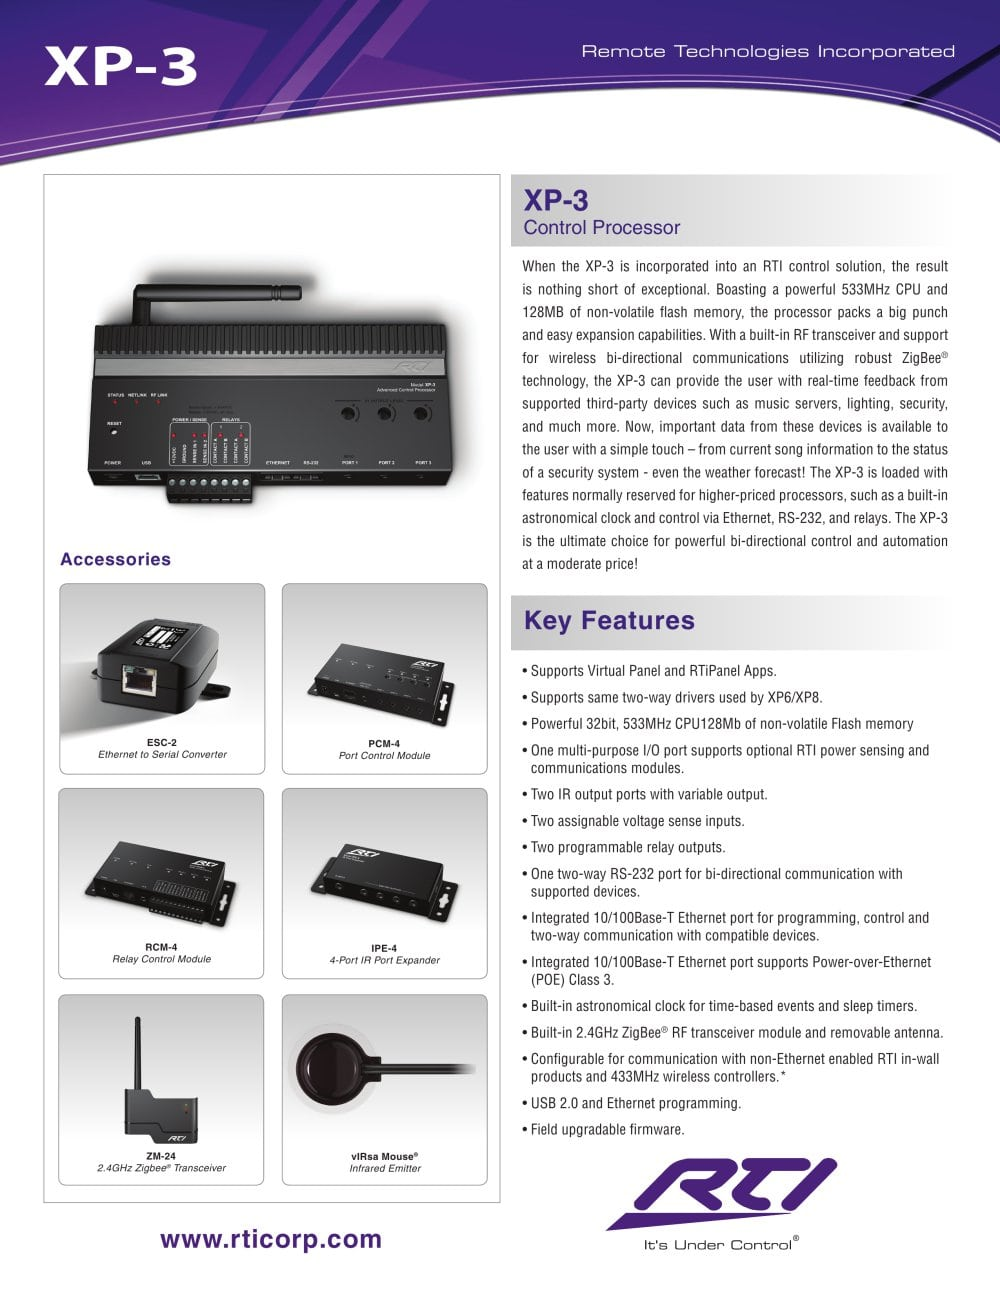 Xp 3 Control Processor Remote Technologies Incorporated Rti Next The Four Relay Outputs From Inbuilt Relays 1 2 Pages